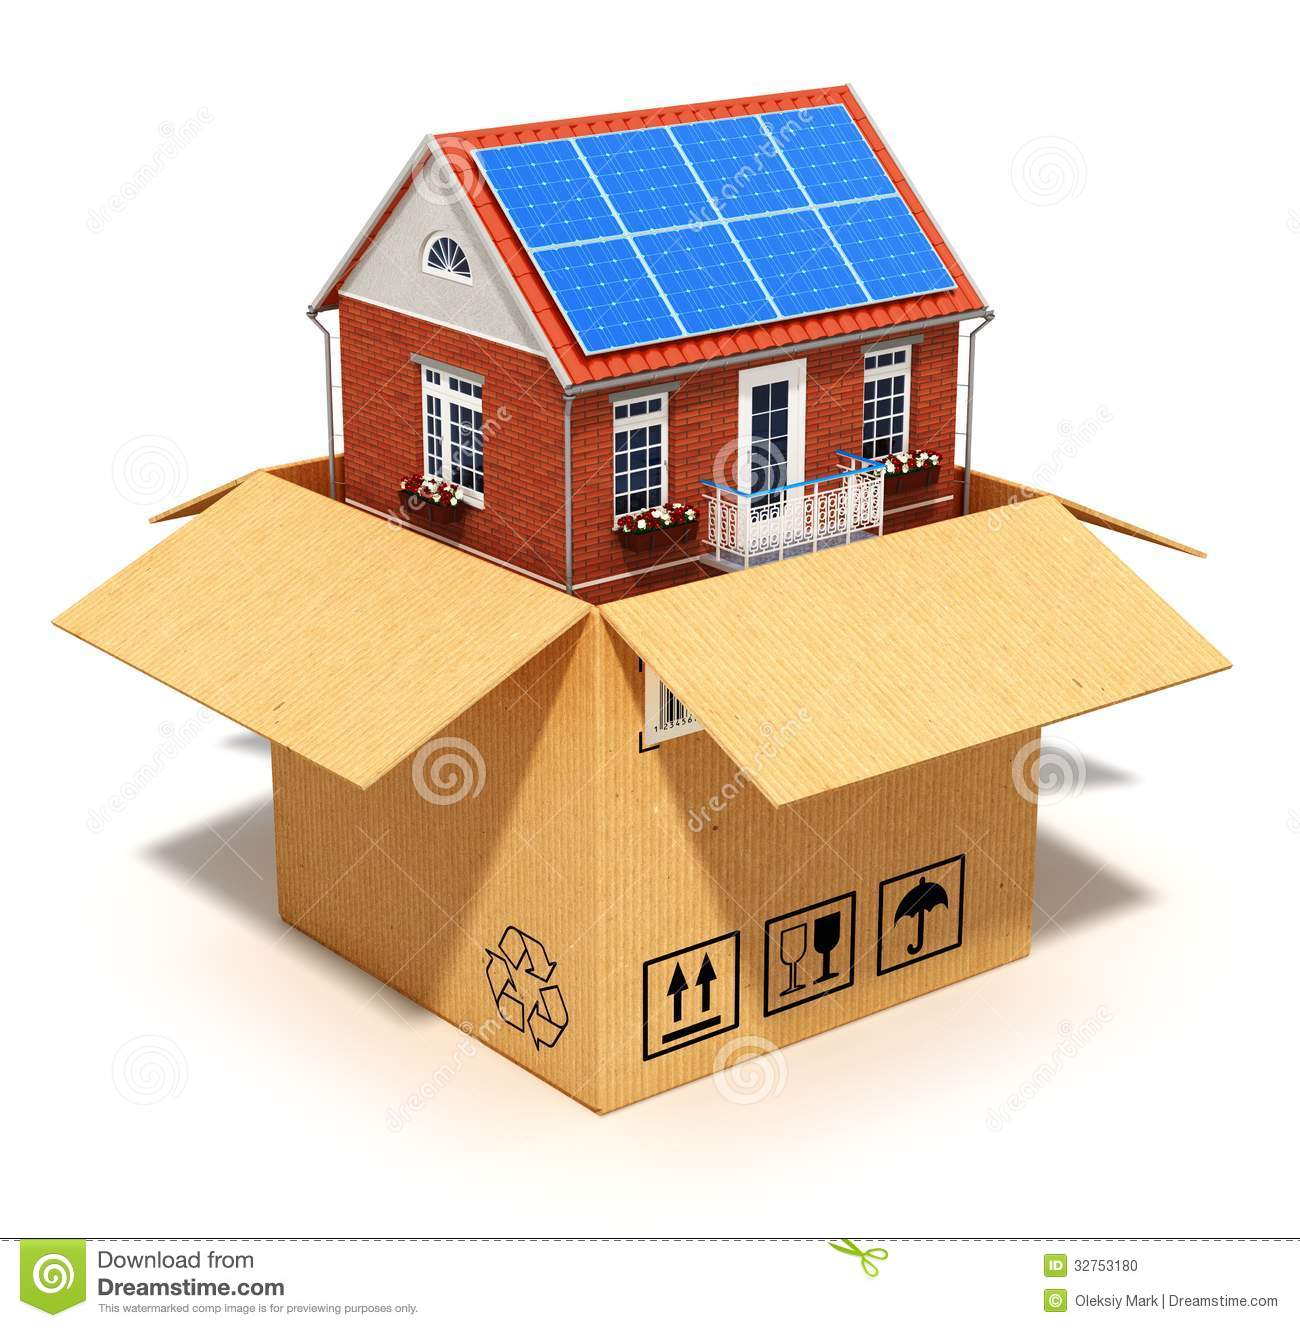 New house in cardboard box stock photo image 32753180 for How to finance building a new home